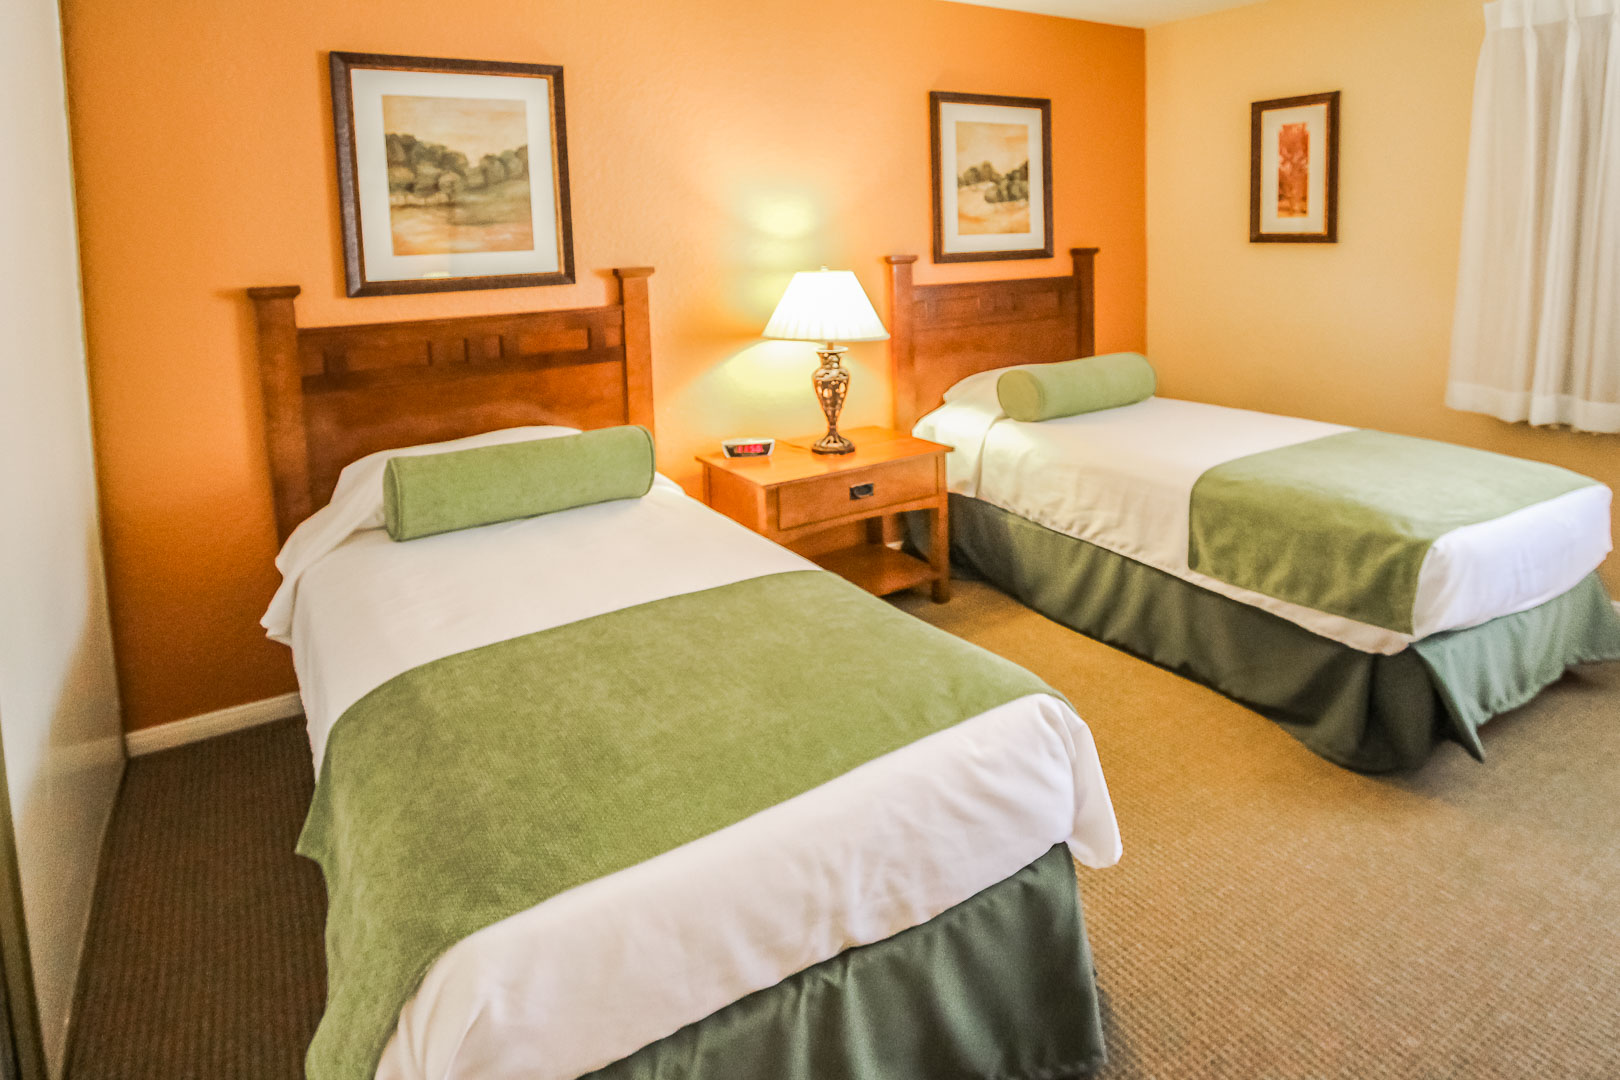 A cozy bedroom with double beds at VRI's Lake Arrowhead Chalets in California.